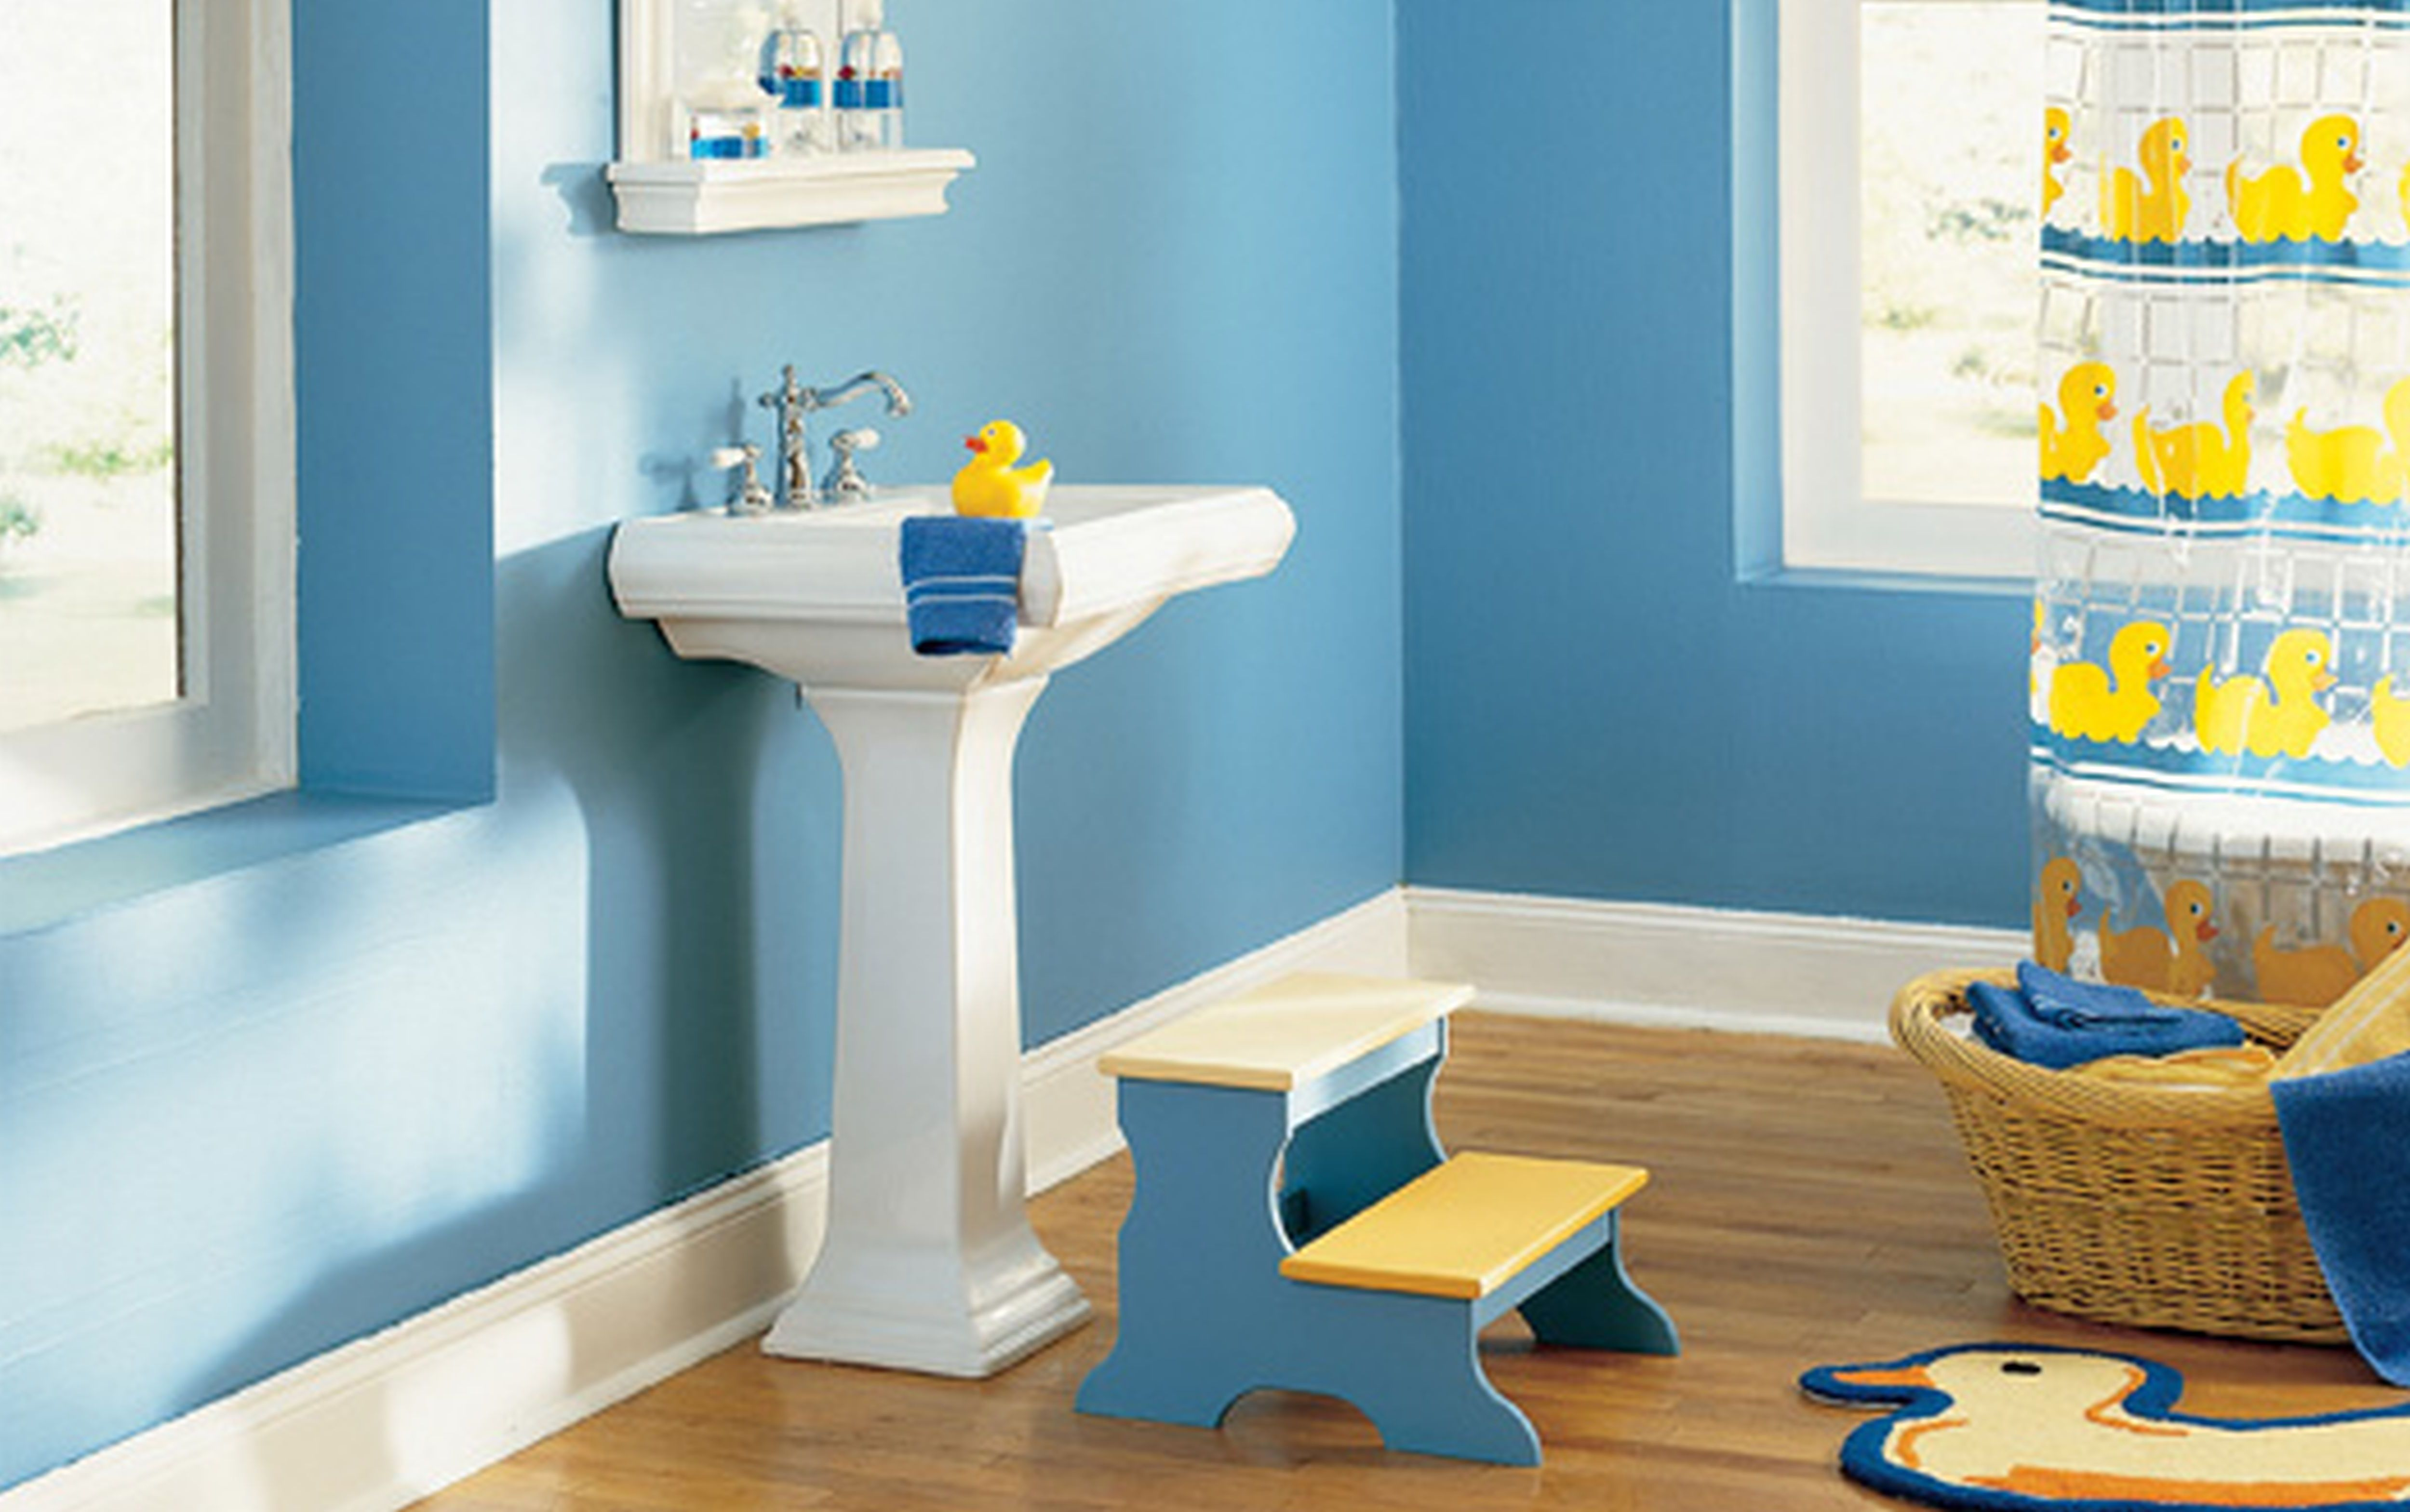 Top 20 Bathroom Products For Kids